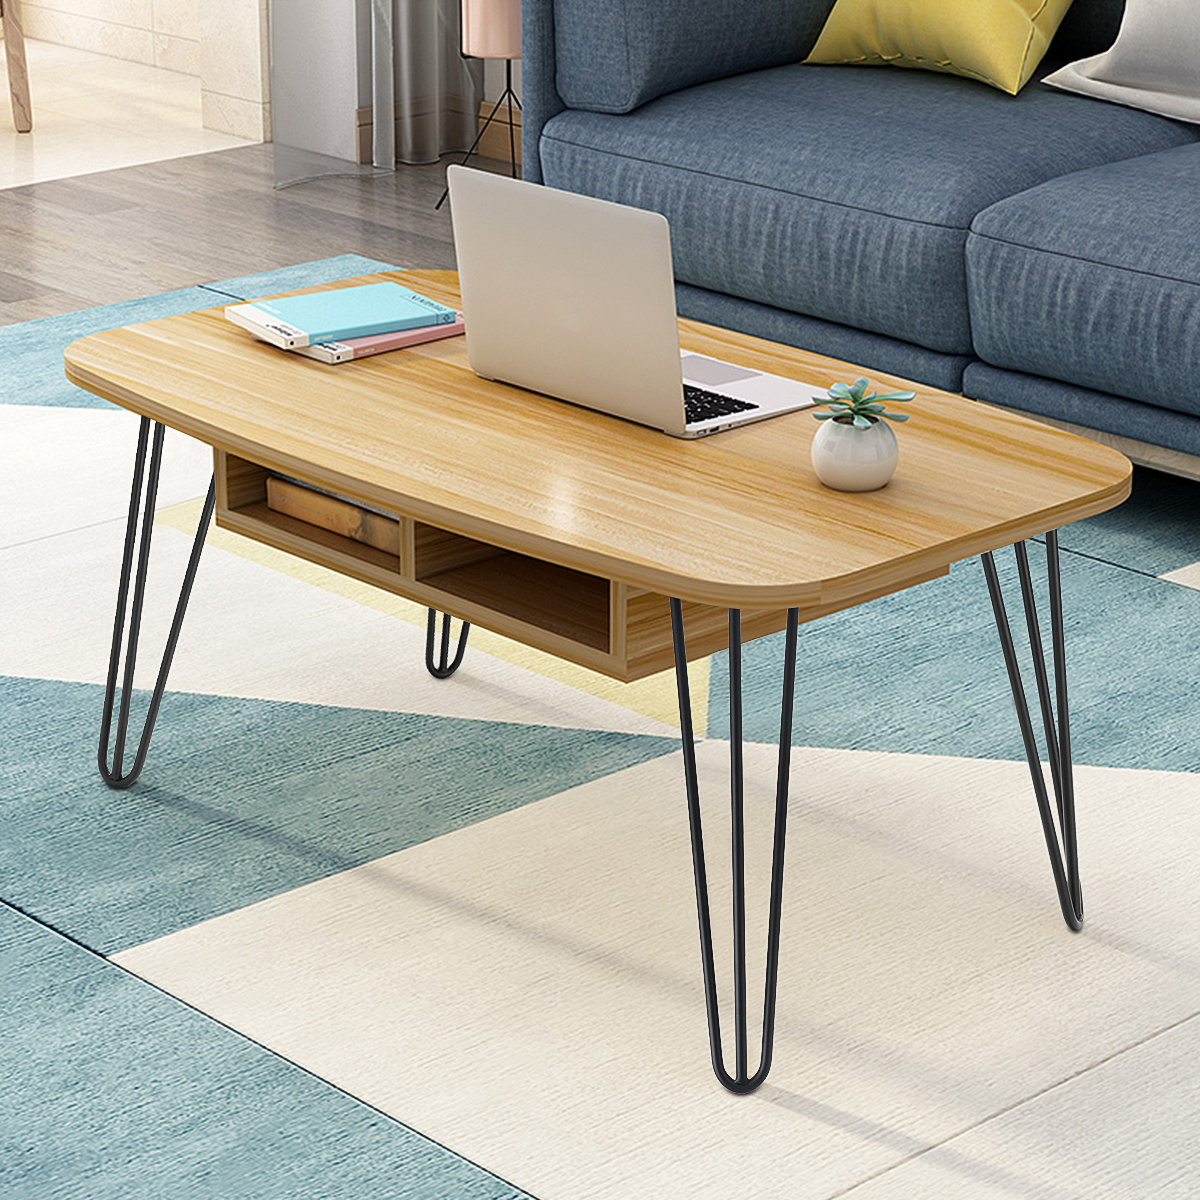 16 industrial vintage table legs set of 4 coffee bench 3 prong iron hairpin leg solid iron laptop desk walmart com